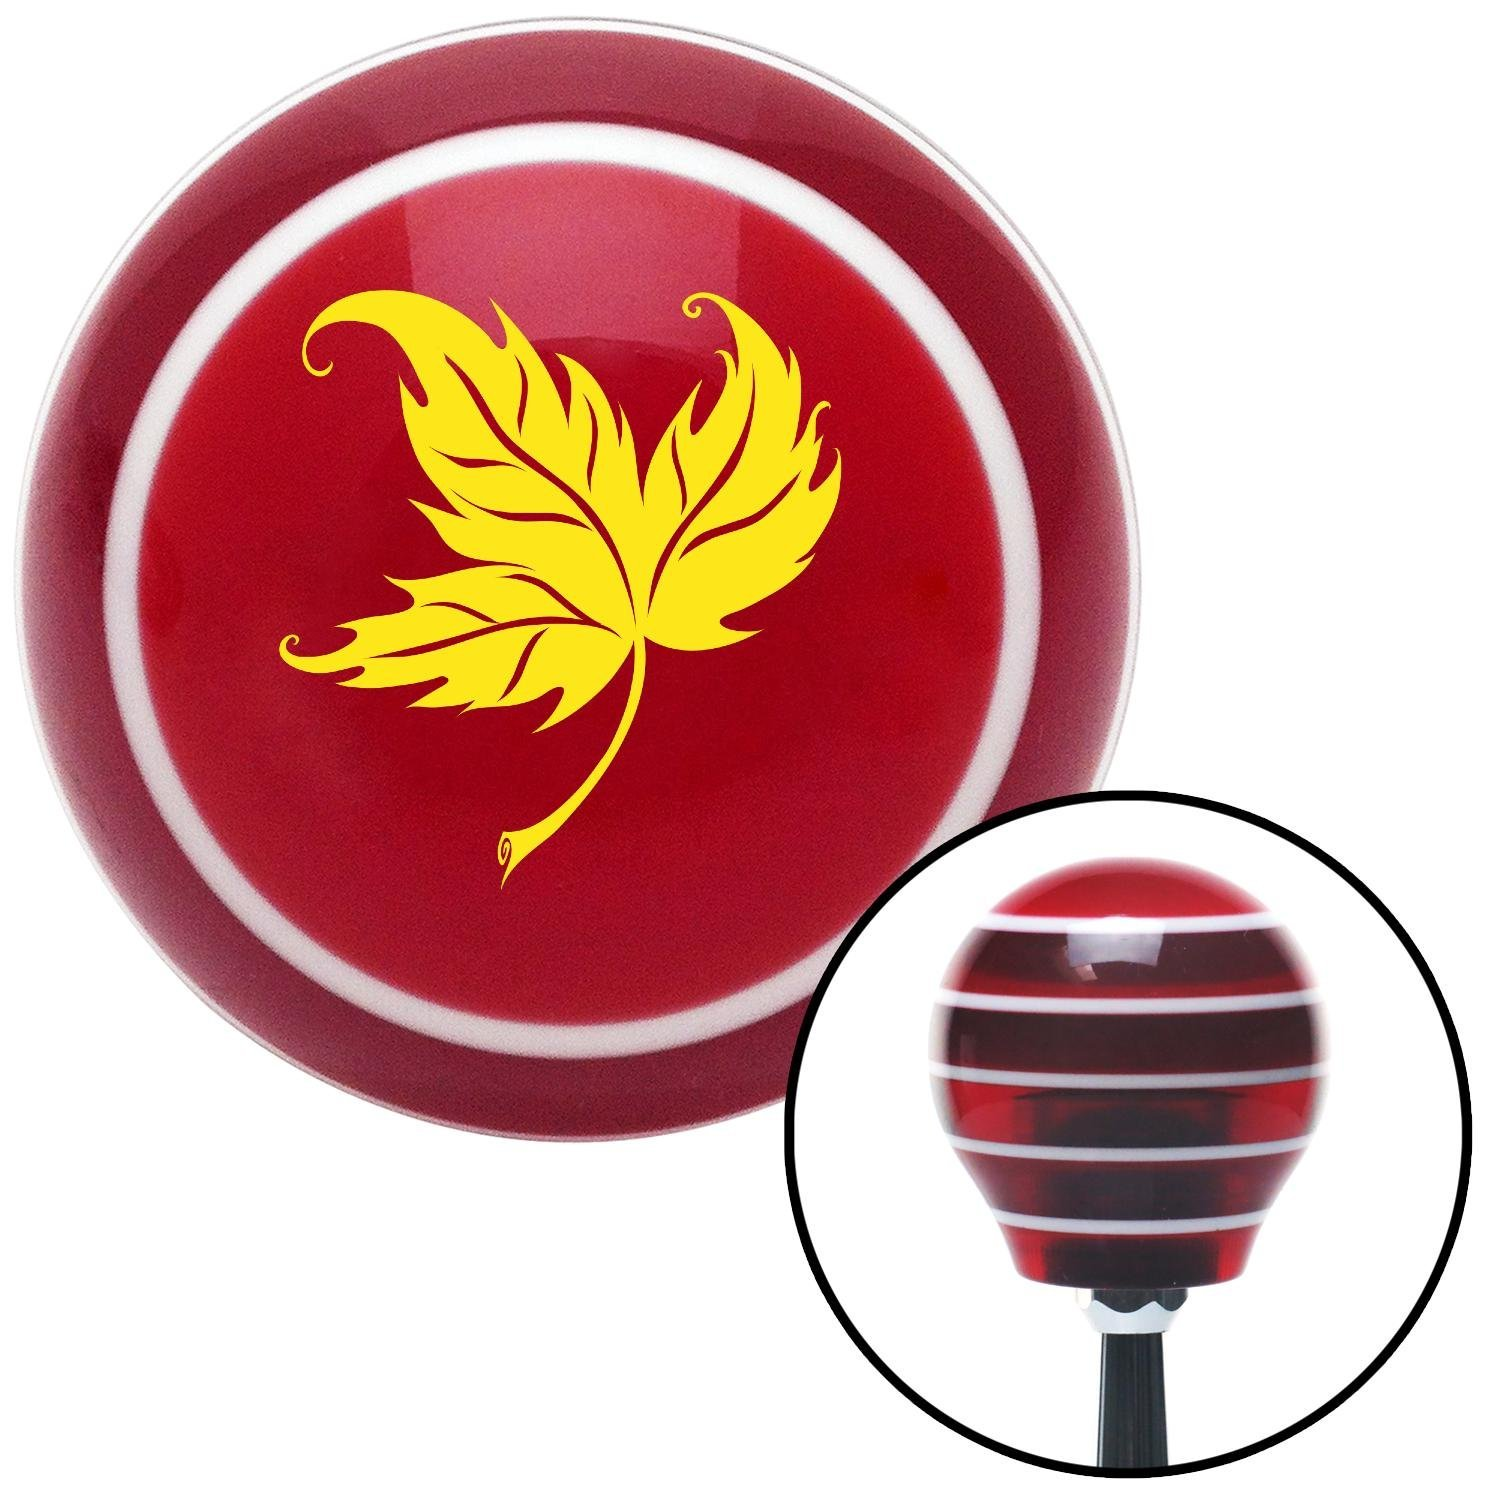 American Shifter 116321 Red Stripe Shift Knob with M16 x 1.5 Insert Yellow Falling Leaf